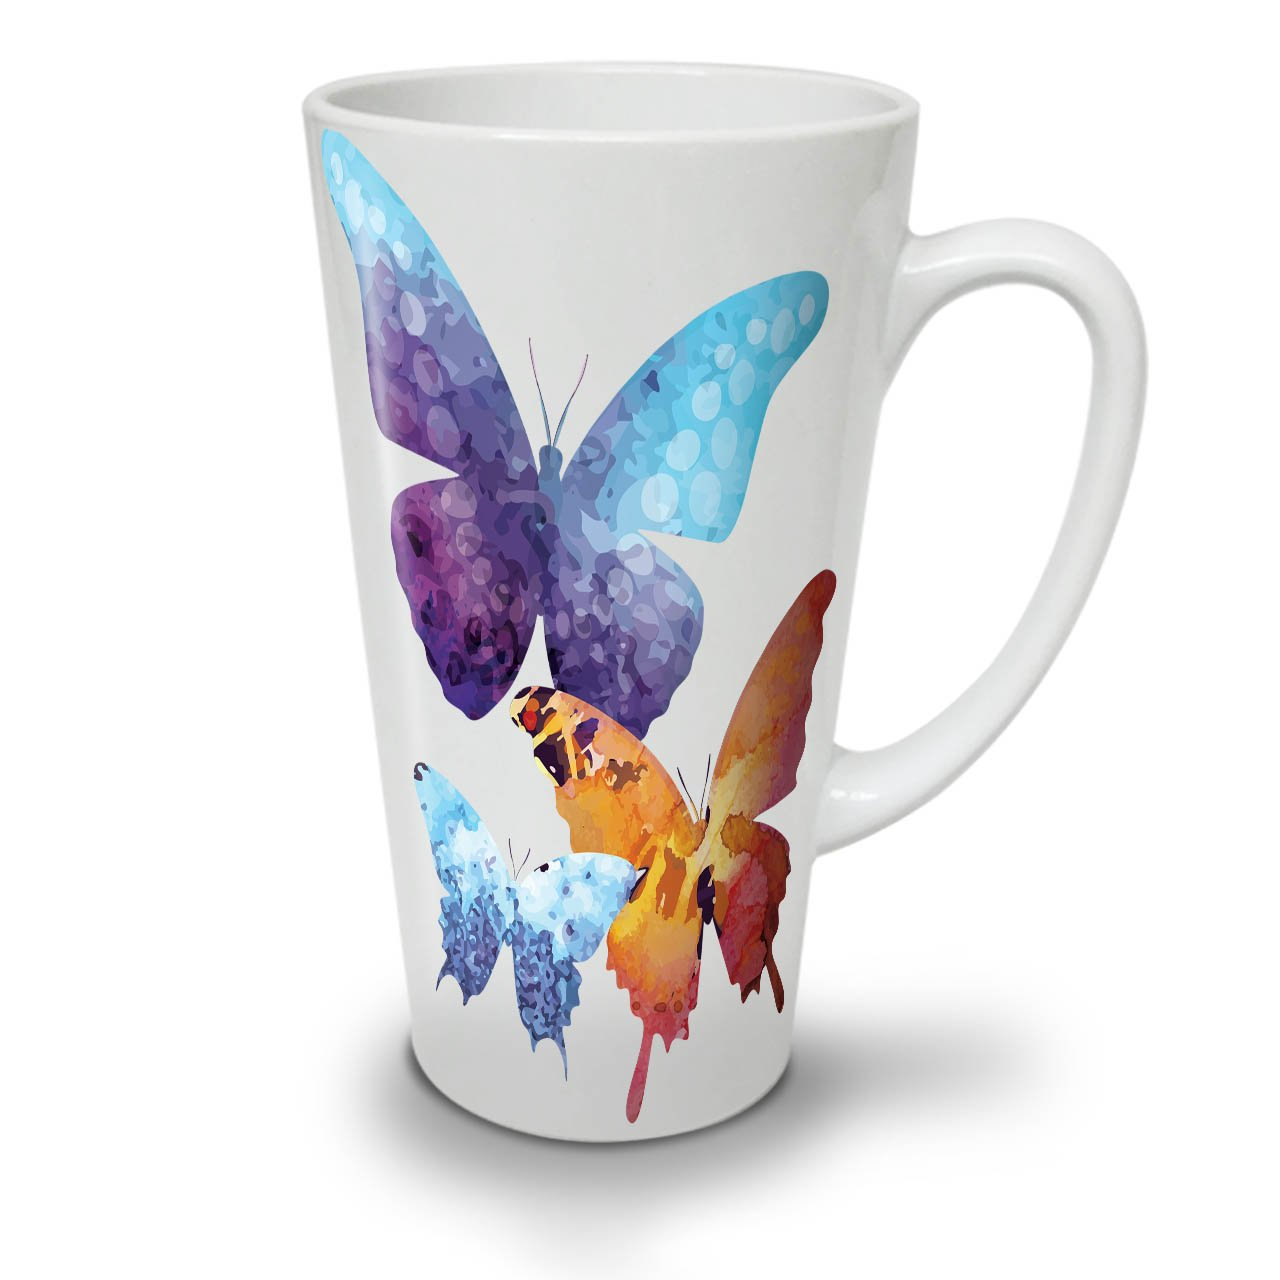 Colorful Butterflies Art White Ceramic Latte Mug 12 oz | Wellcoda